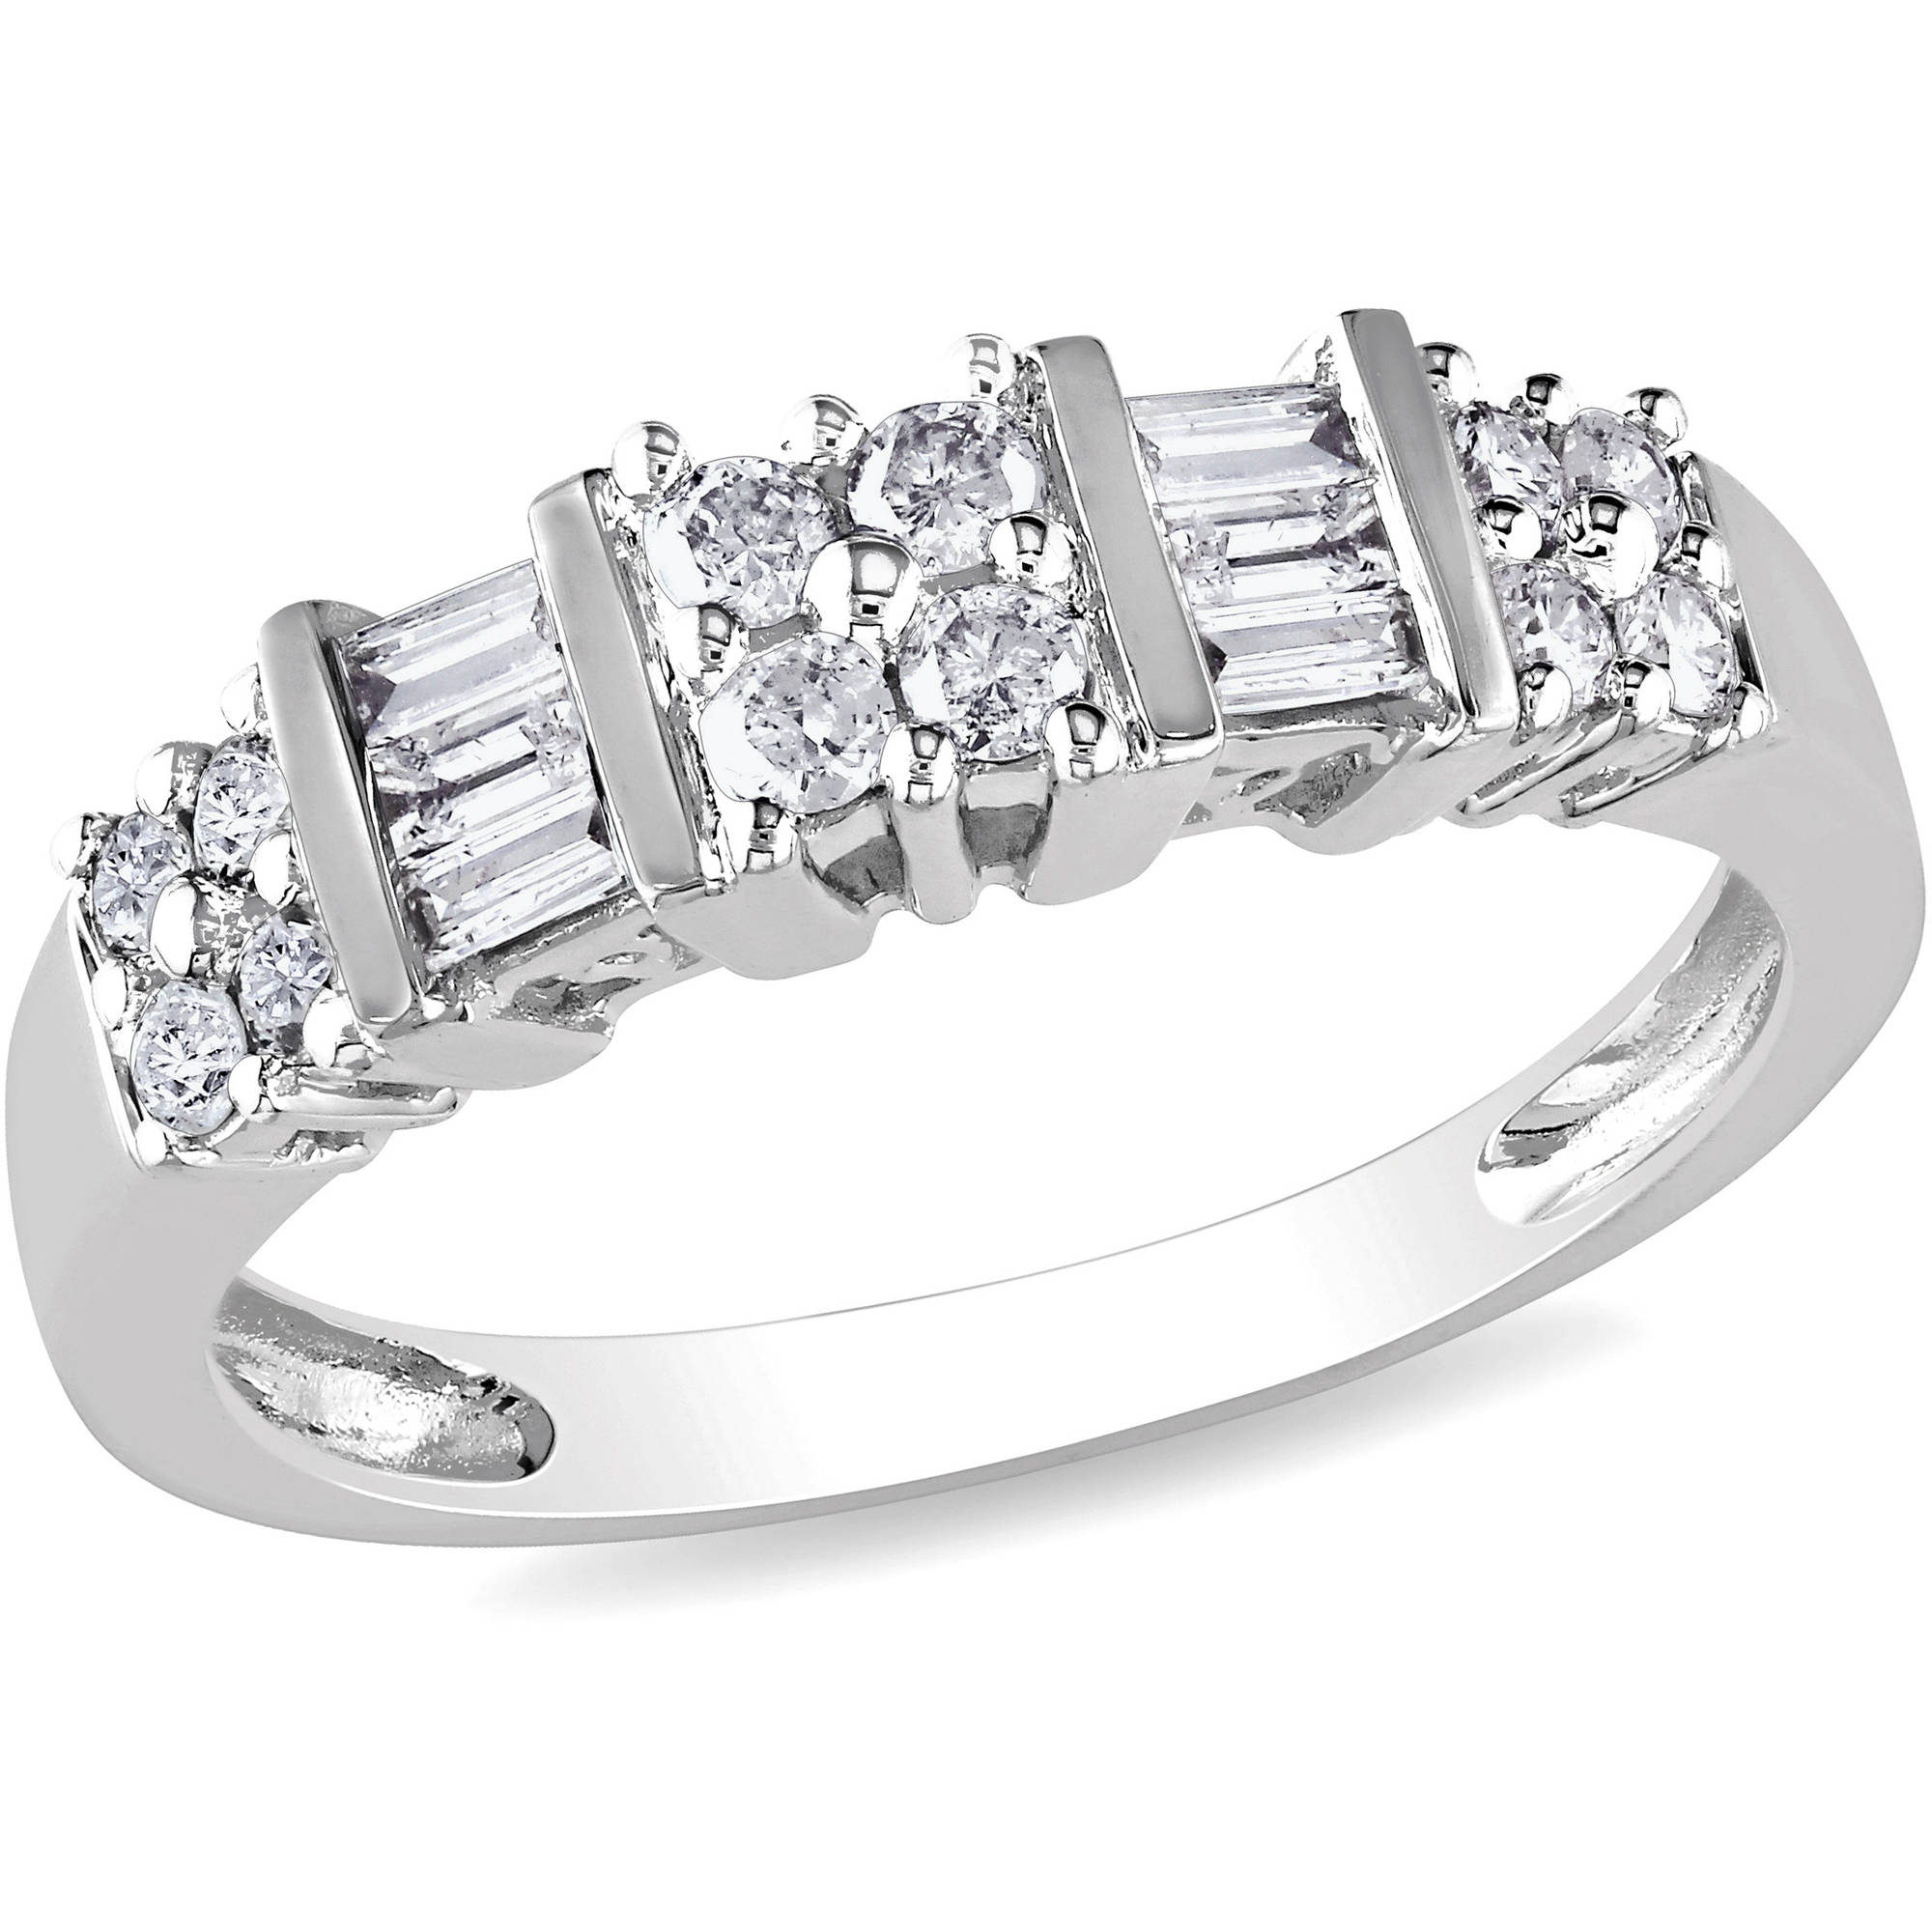 Miabella 1/2 Carat T.W. Round and Baguette-Cut Diamond Wedding Band in 10kt White Gold